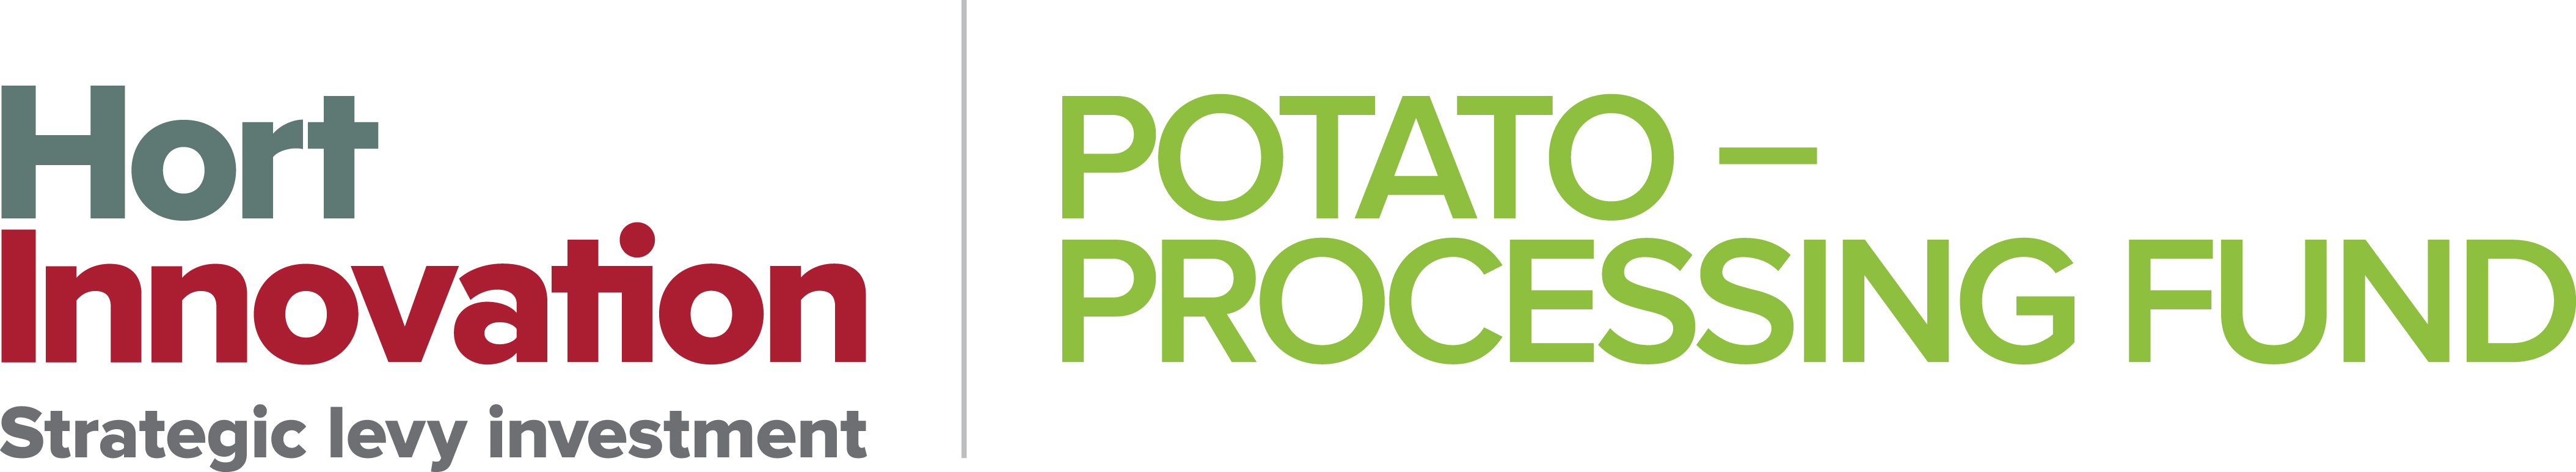 Hort Innov Potato Processing